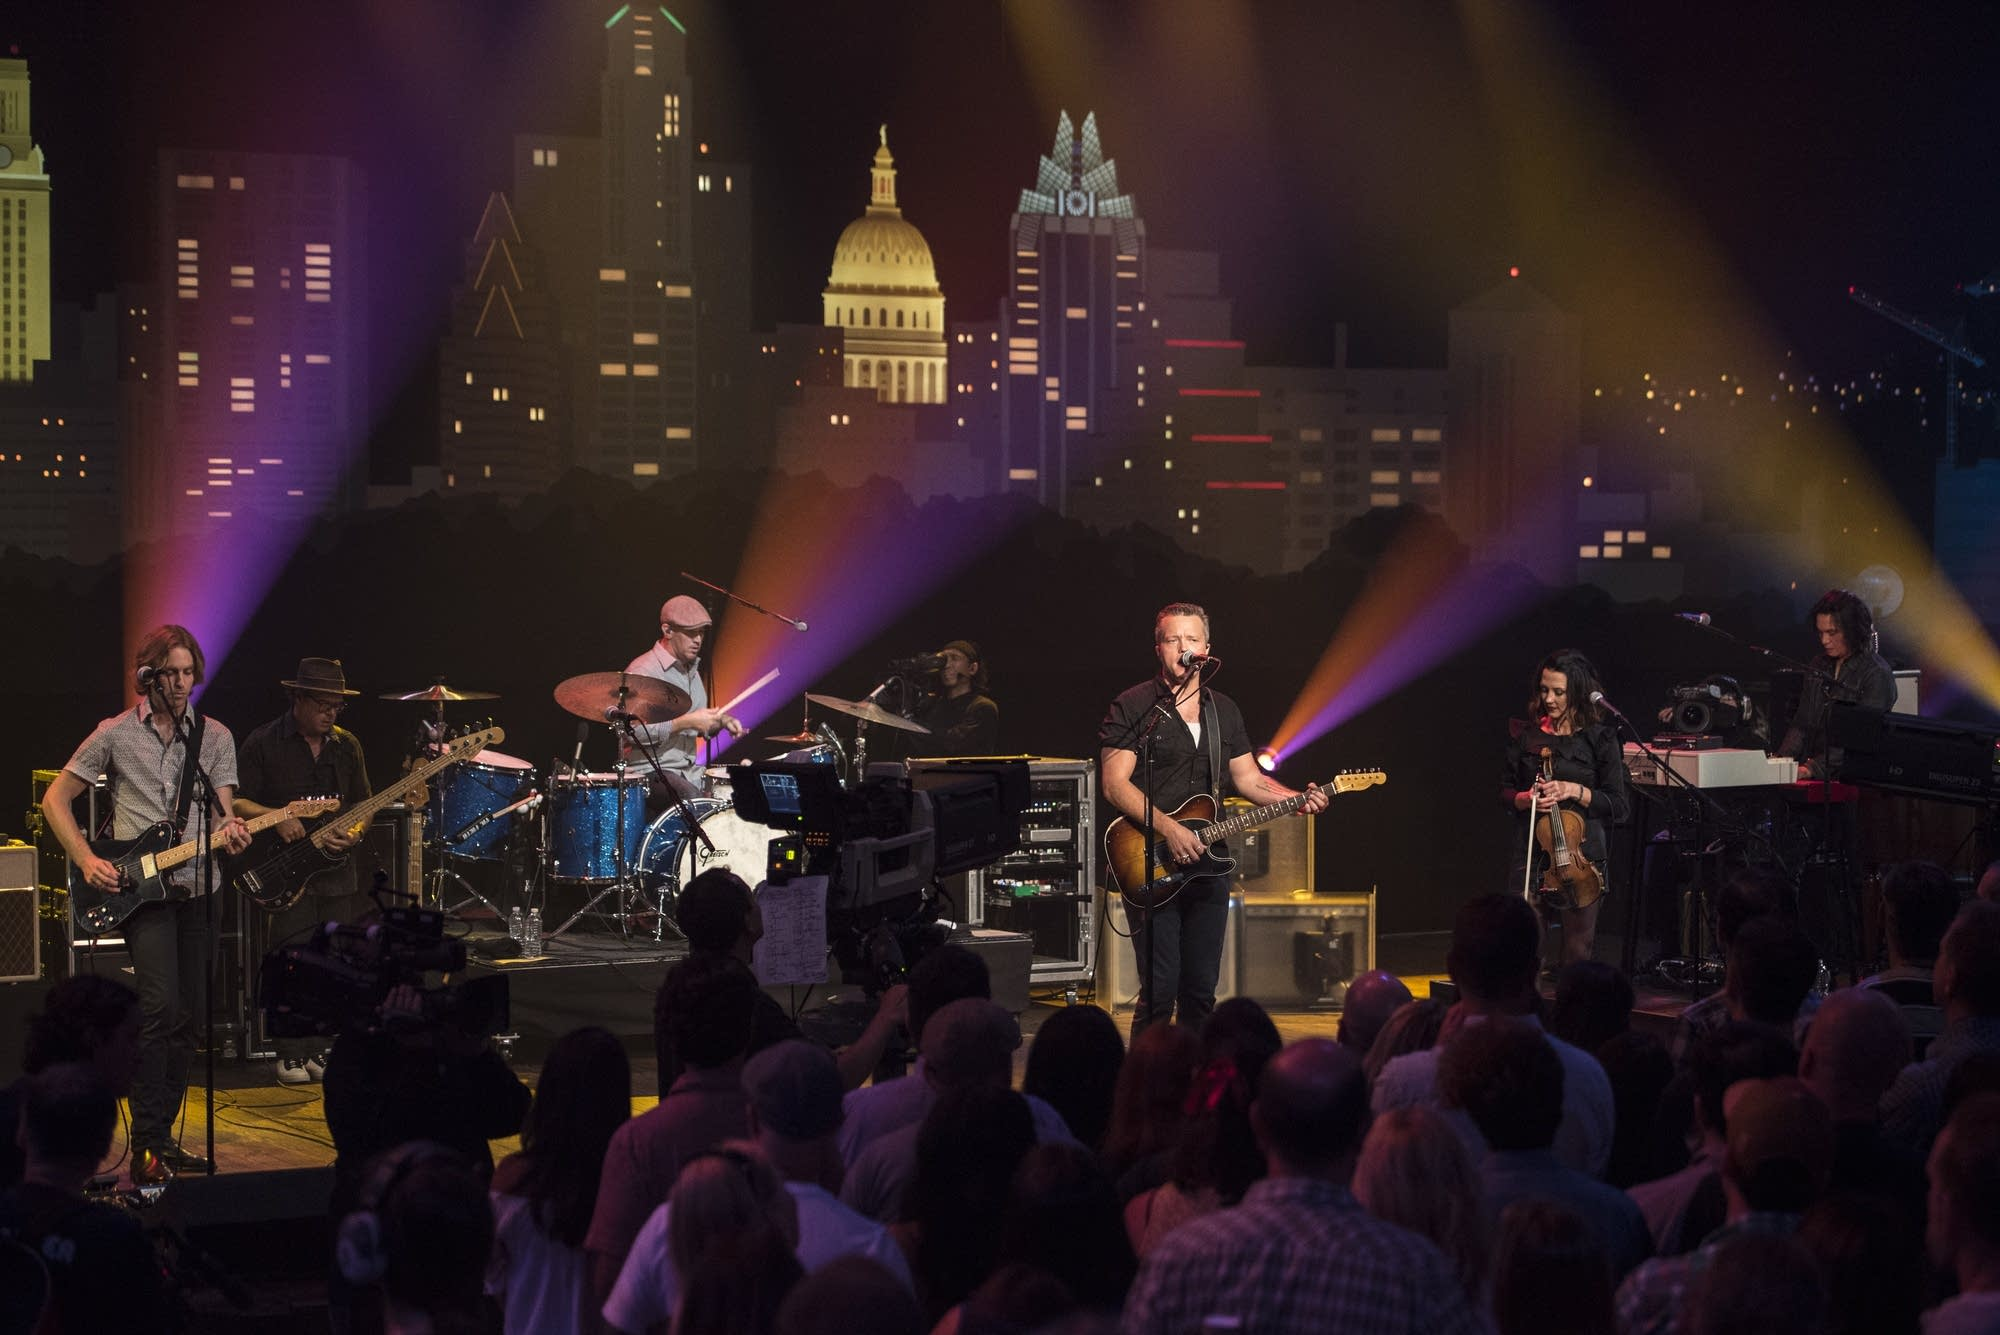 Jason Isbell and the 400 Unit on 'Austin City Limits'